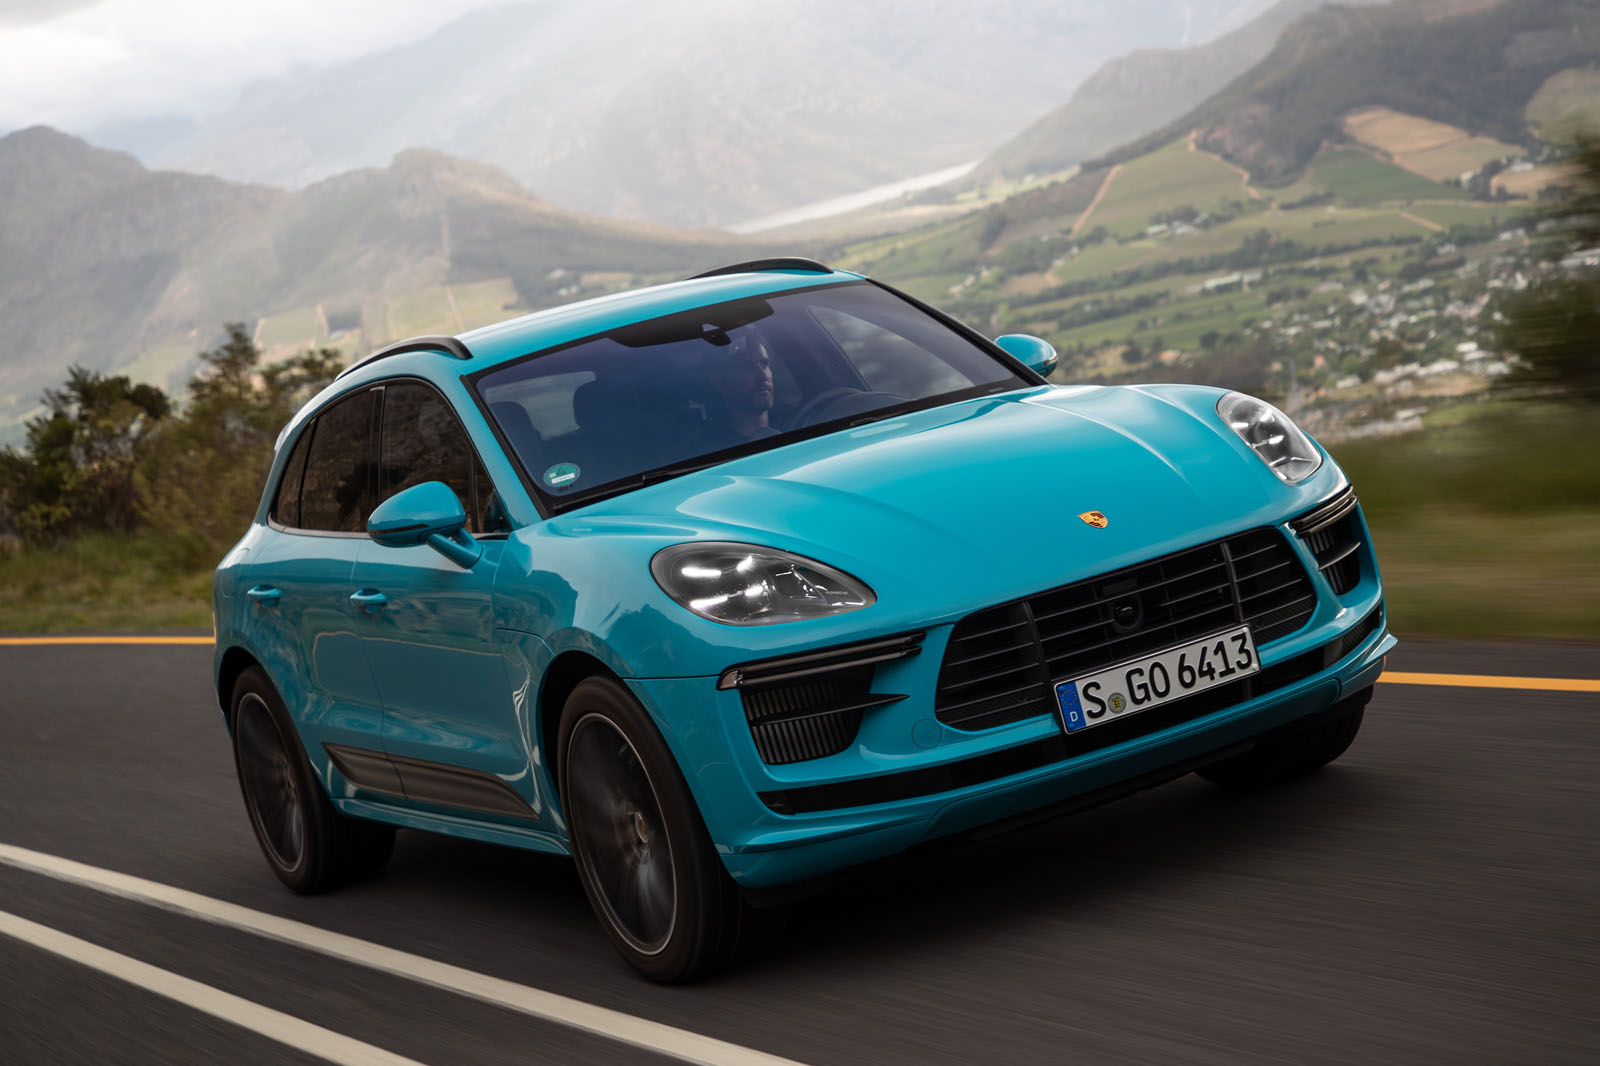 2020 Porsche Macan Turbo Price and Release date